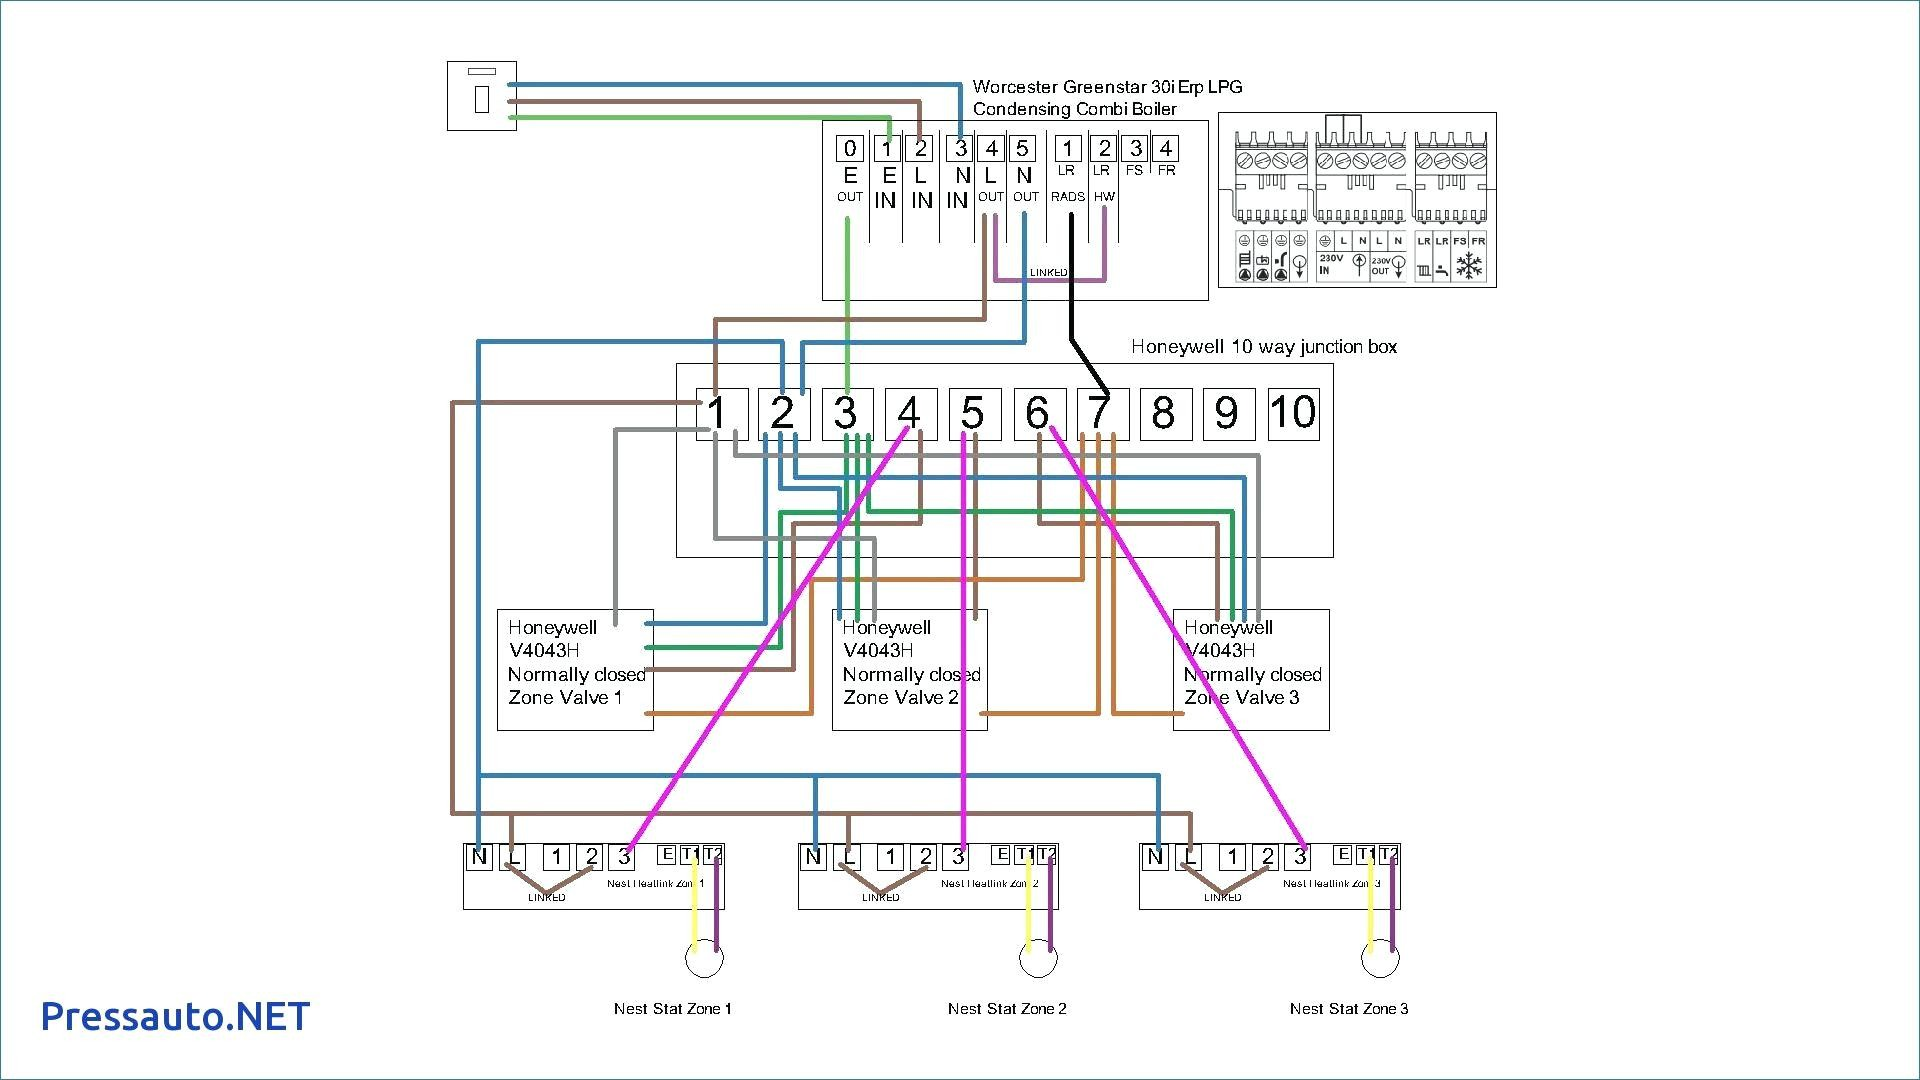 unusual 3 port valve wiring diagram images electrical honeywell actuator diagrams for zone valves on boiler